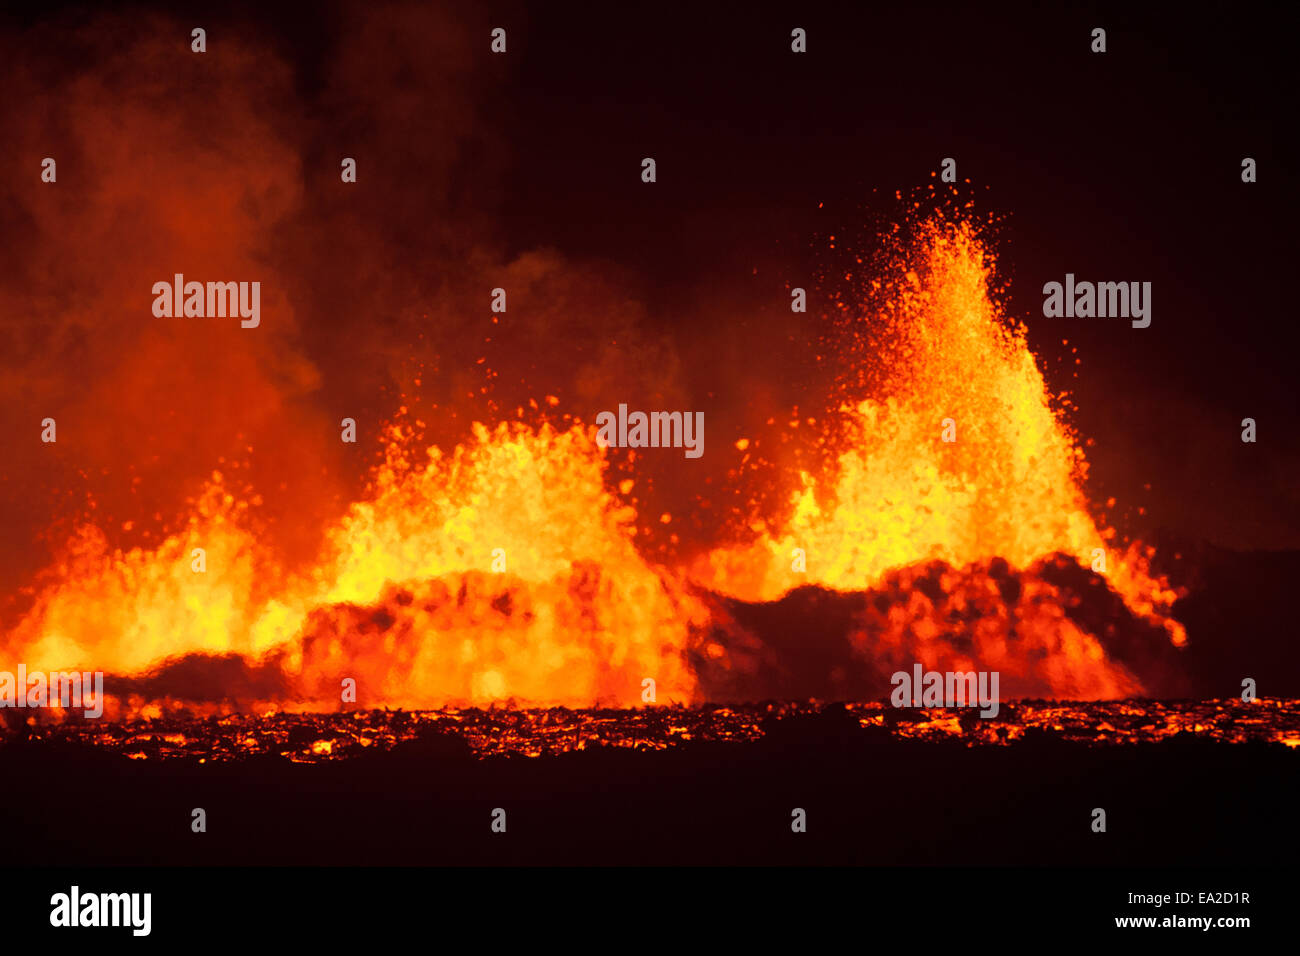 main vent of the Holuhraun eruption spewing lava - Stock Image